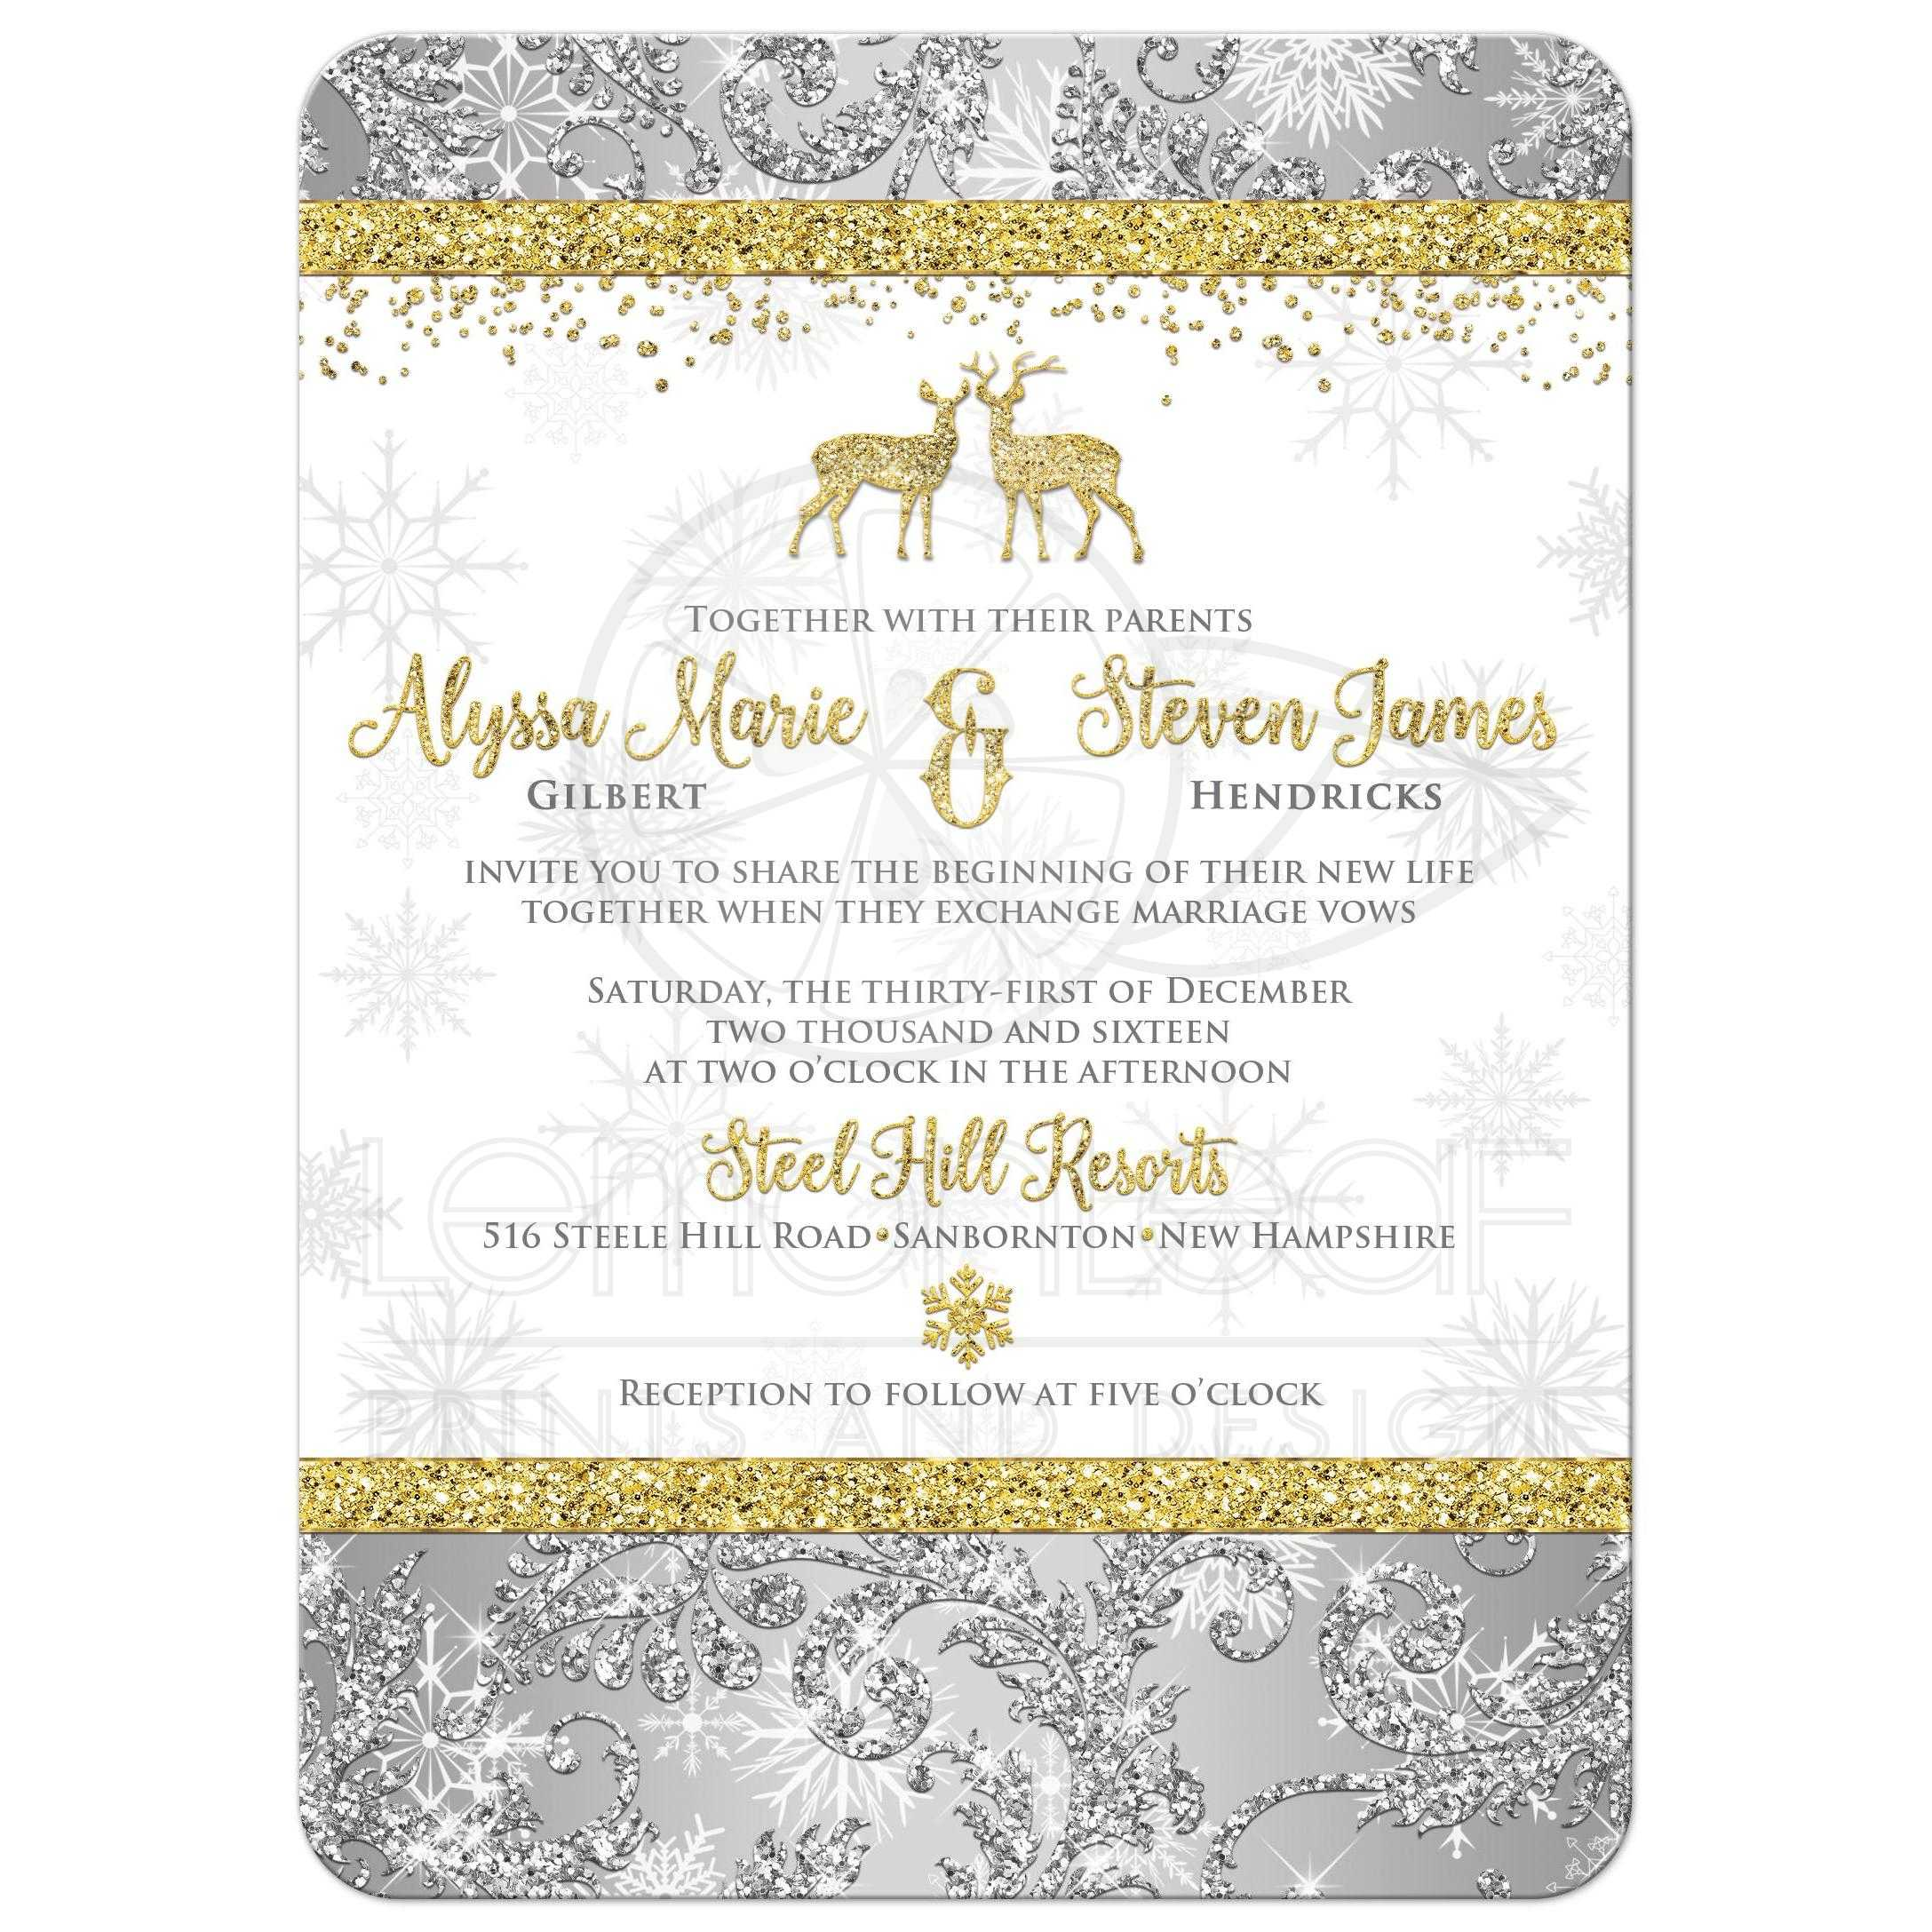 gold and white snowflakes and glitter damask pattern winter wonderland wedding invitations with - White And Gold Wedding Invitations